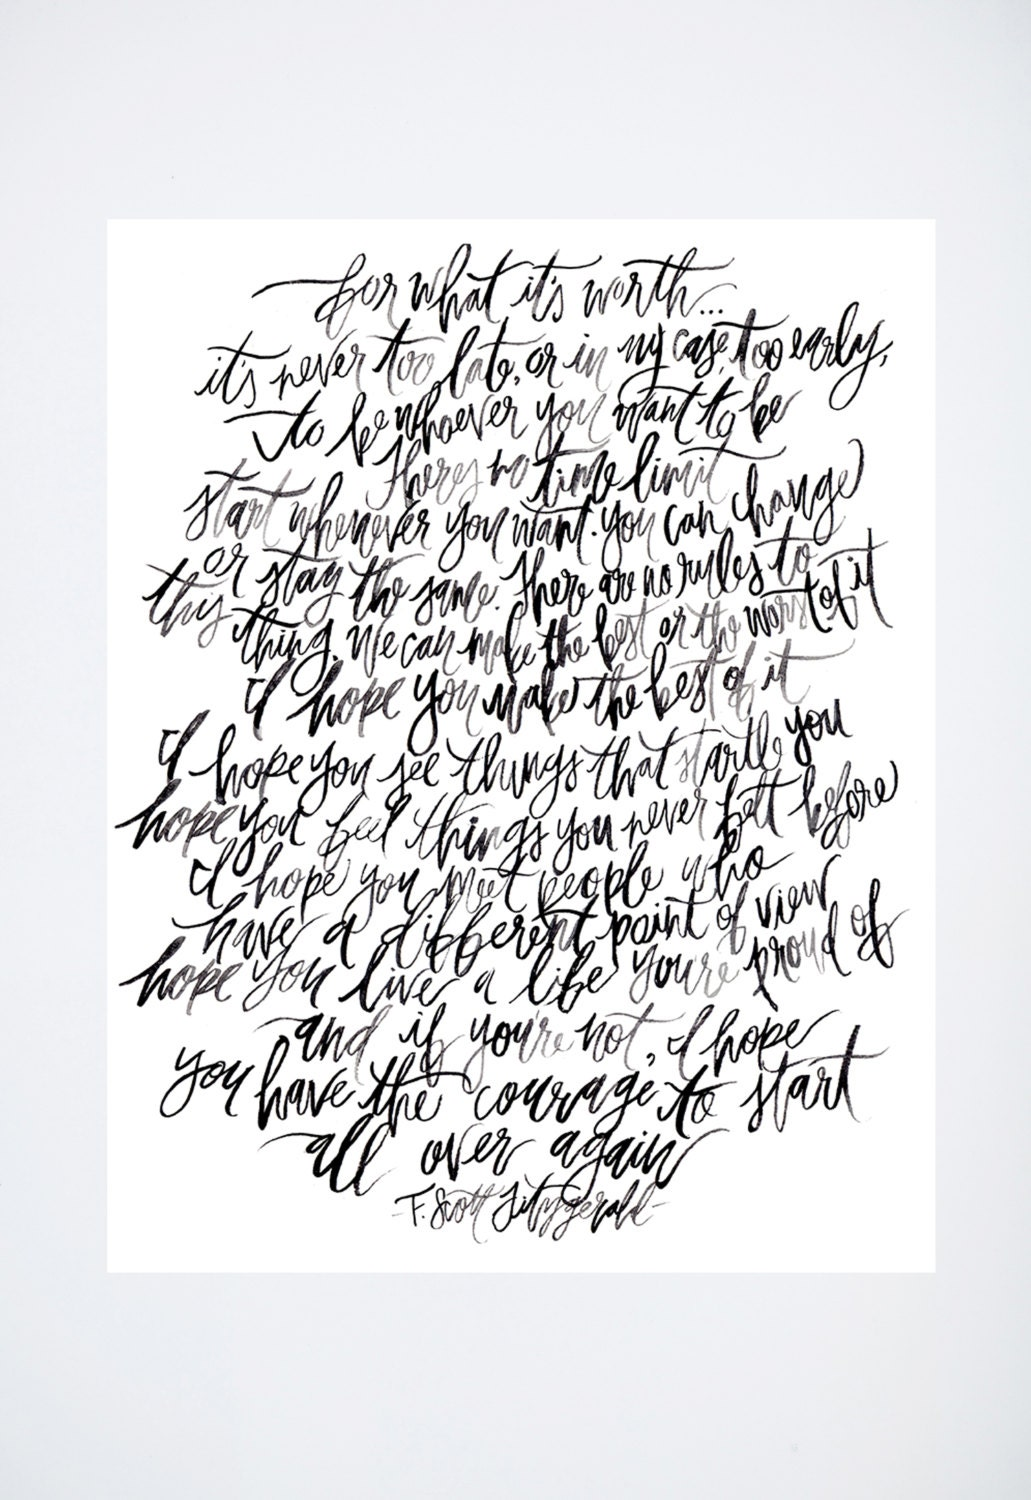 F Scott Fitzgerald Love Quote Calligraphy Inspiration Quotes Fscott Fitzgerald For